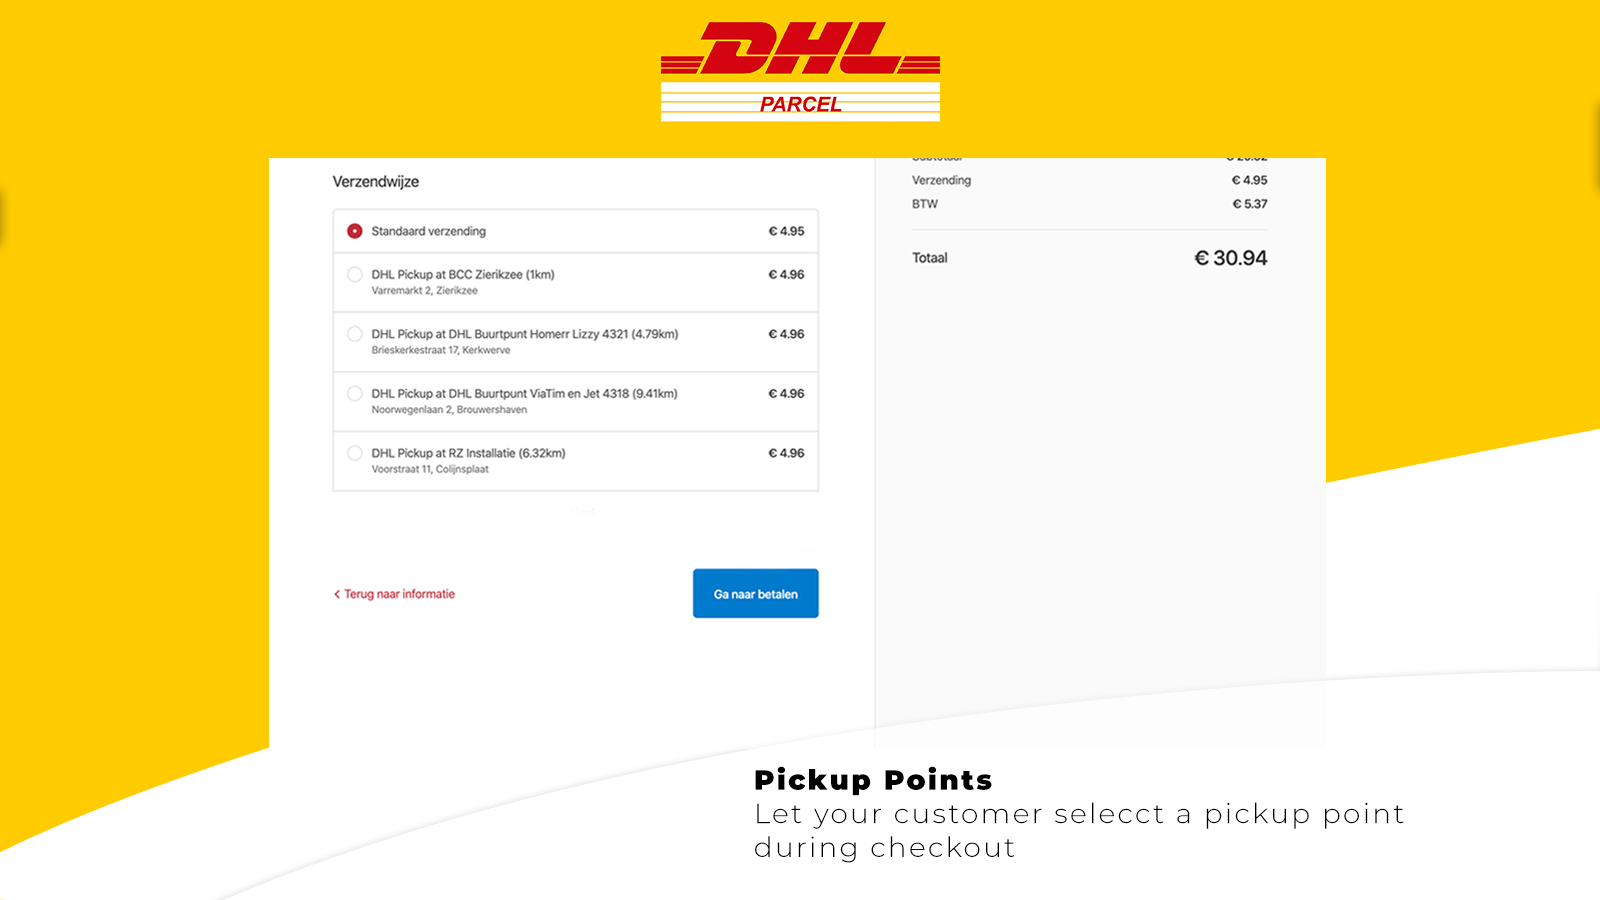 Display pickup points during checkout